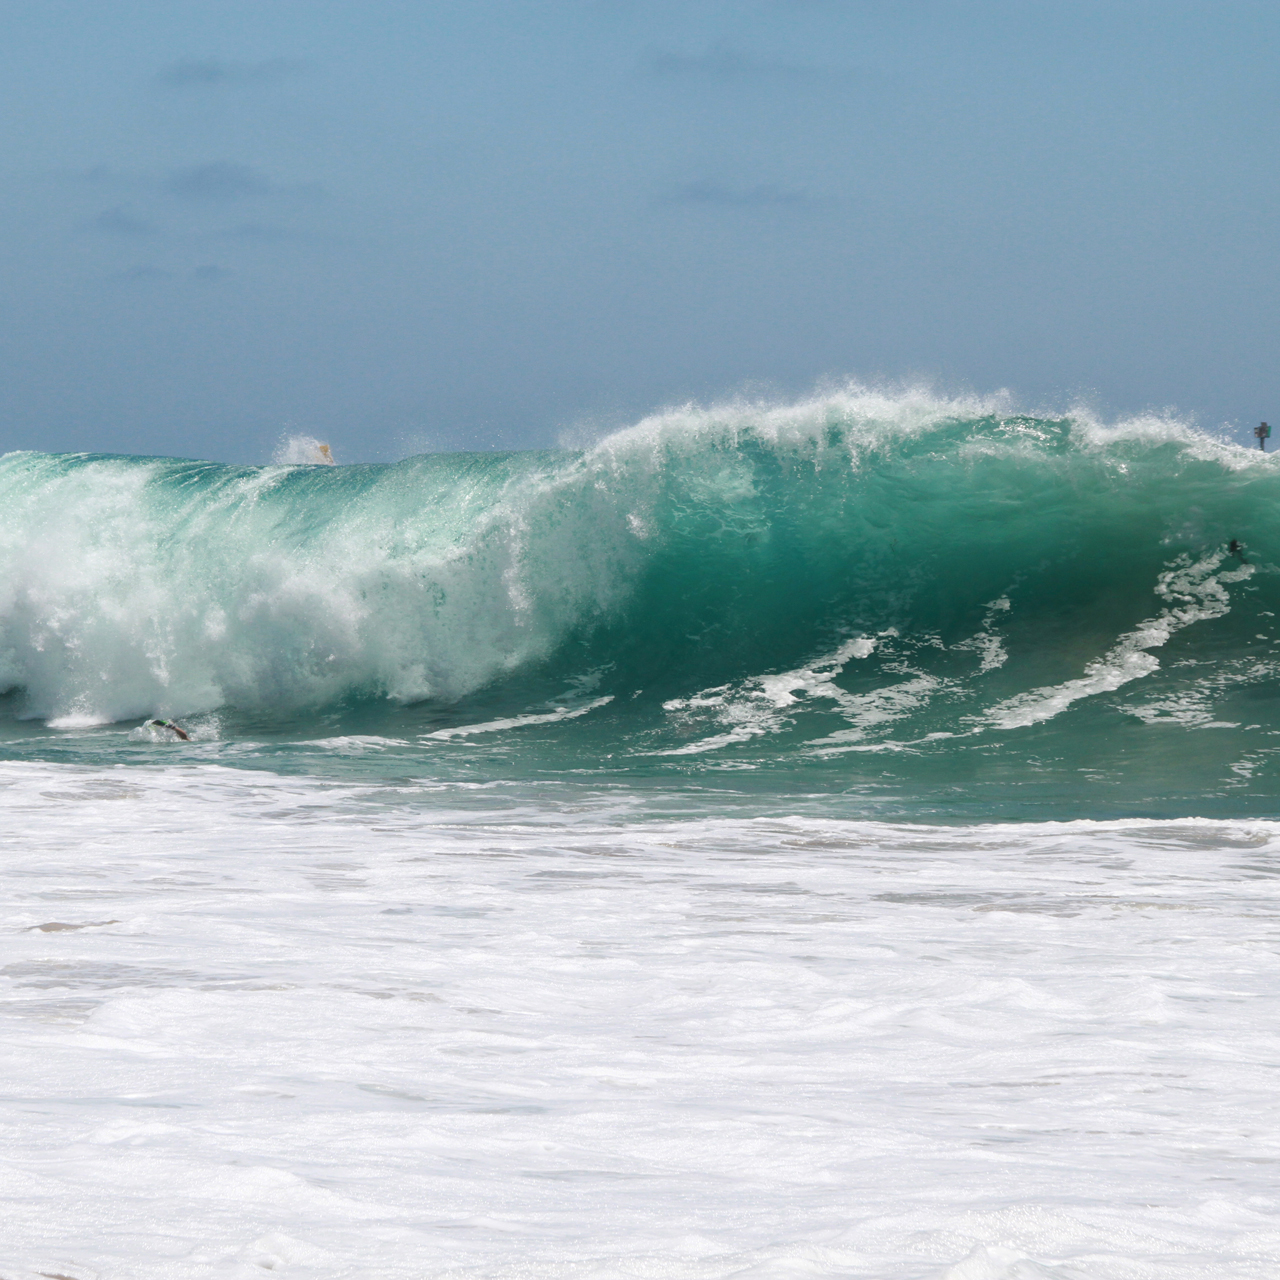 Surf at The Wedge Newport Beach, California 2014 July